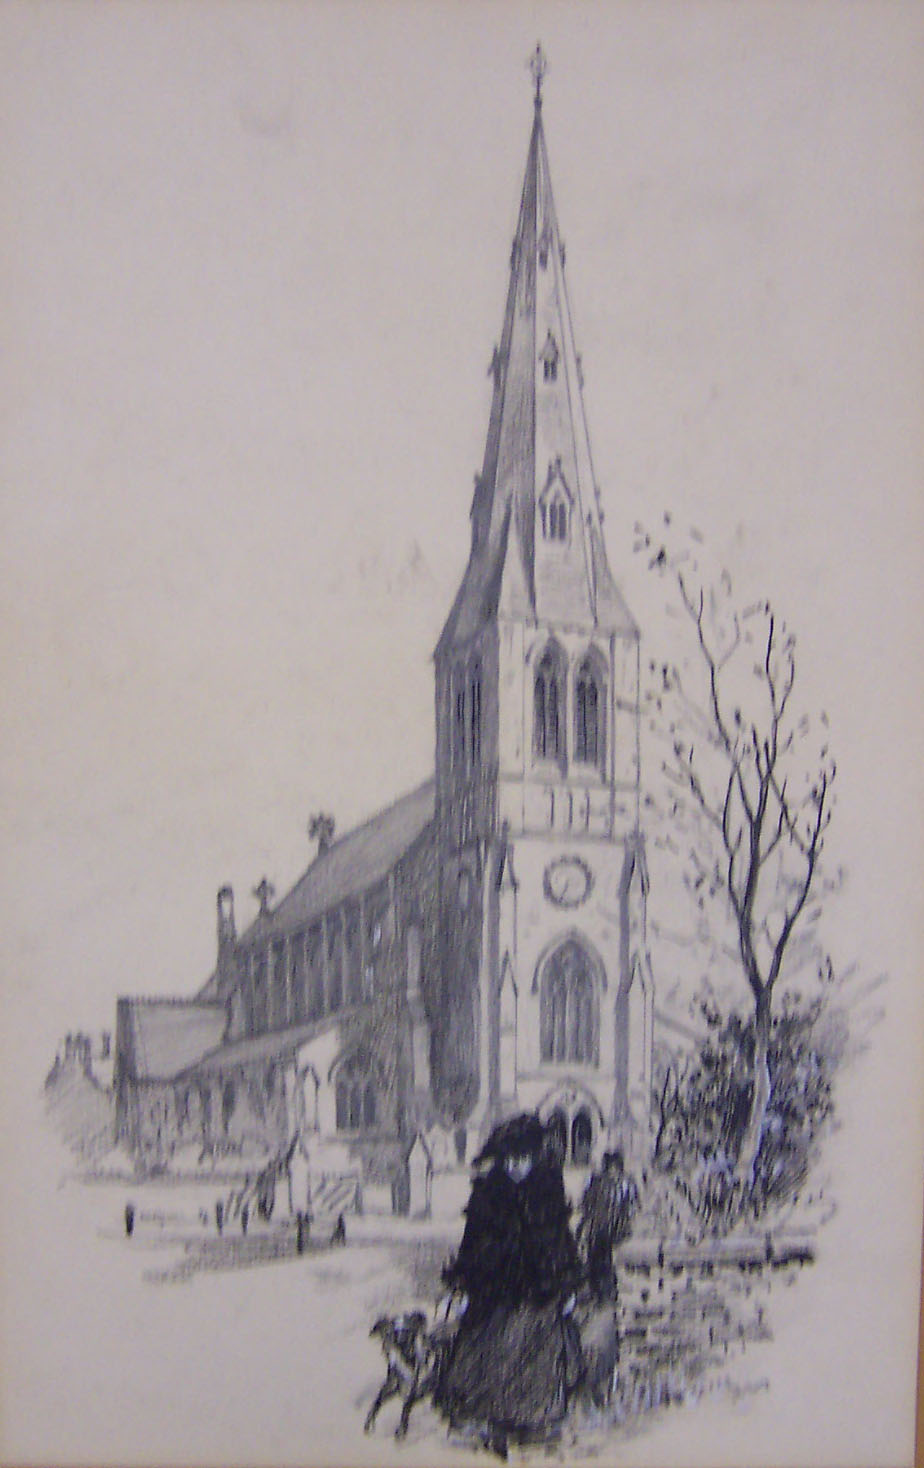 St. Mary's Church, Crumpsall